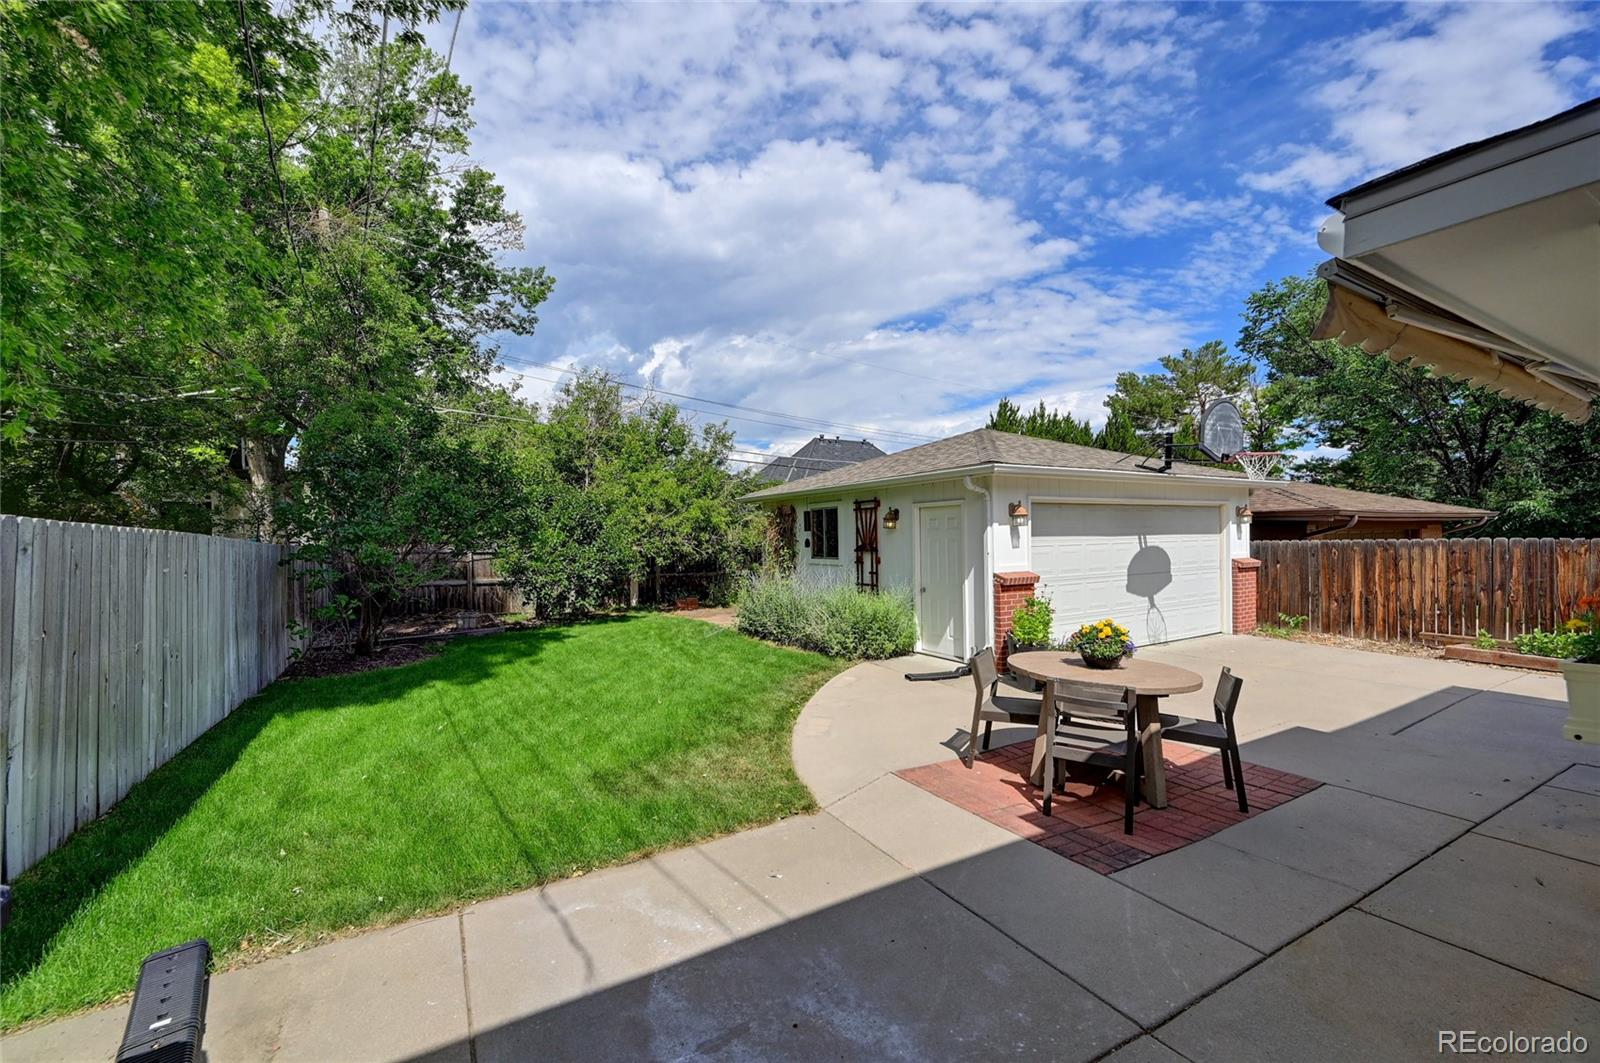 MLS# 3941495 - 2 - 231 Hudson Street, Denver, CO 80220